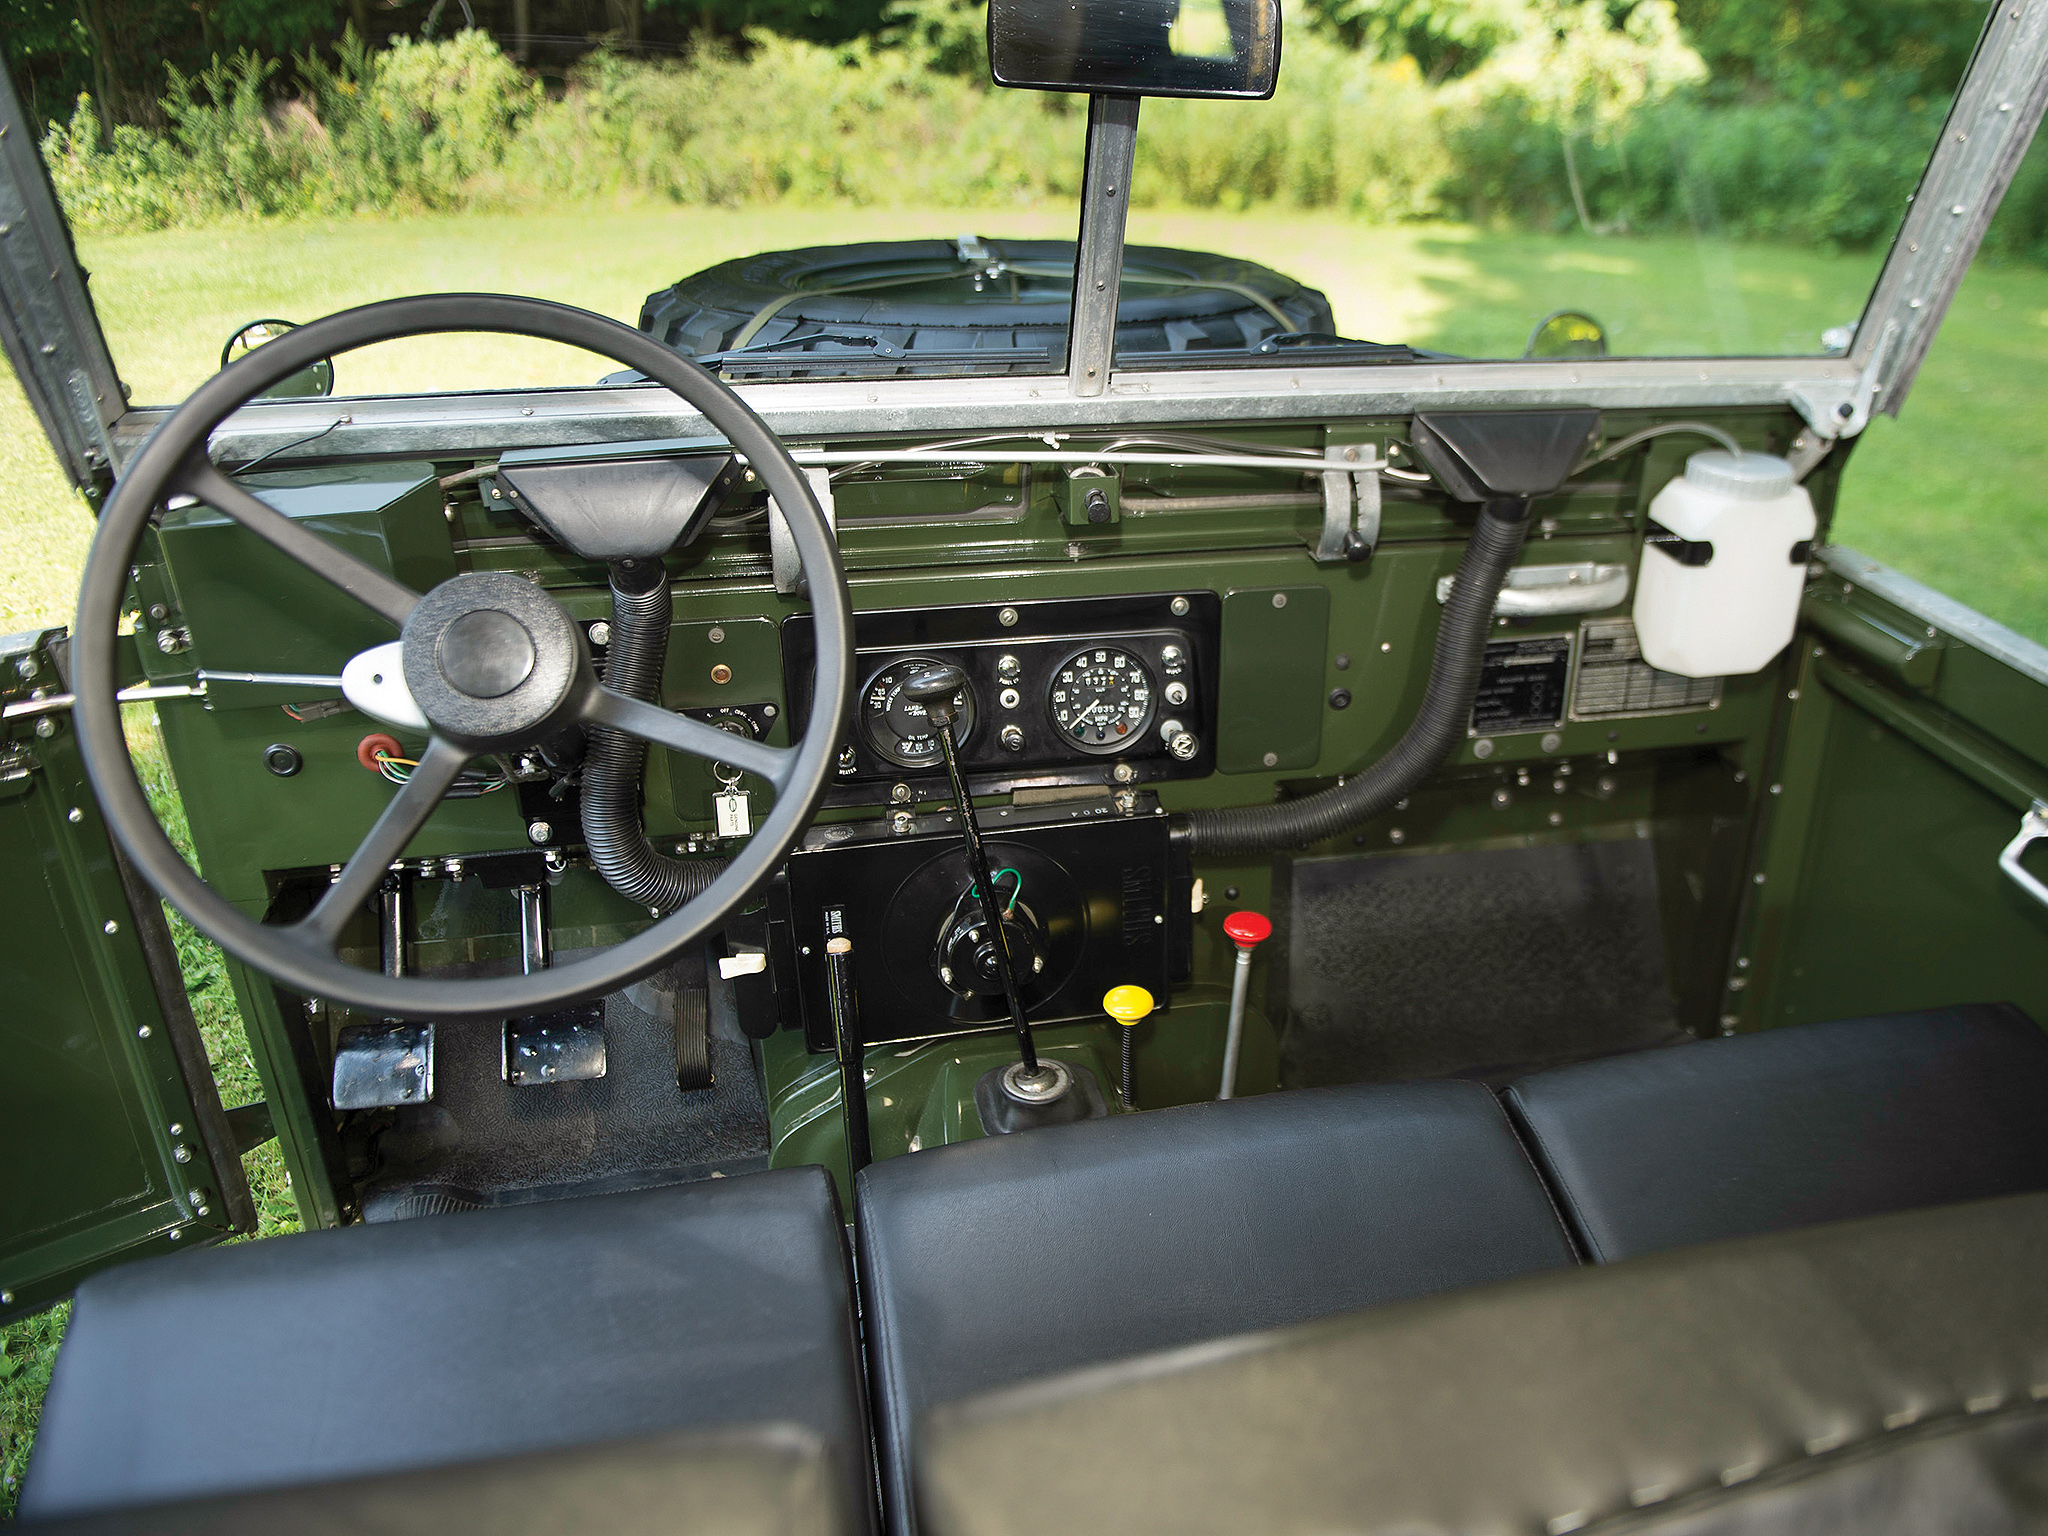 1968 Land Rover Lightweight Iia Offroad 4x4 Military